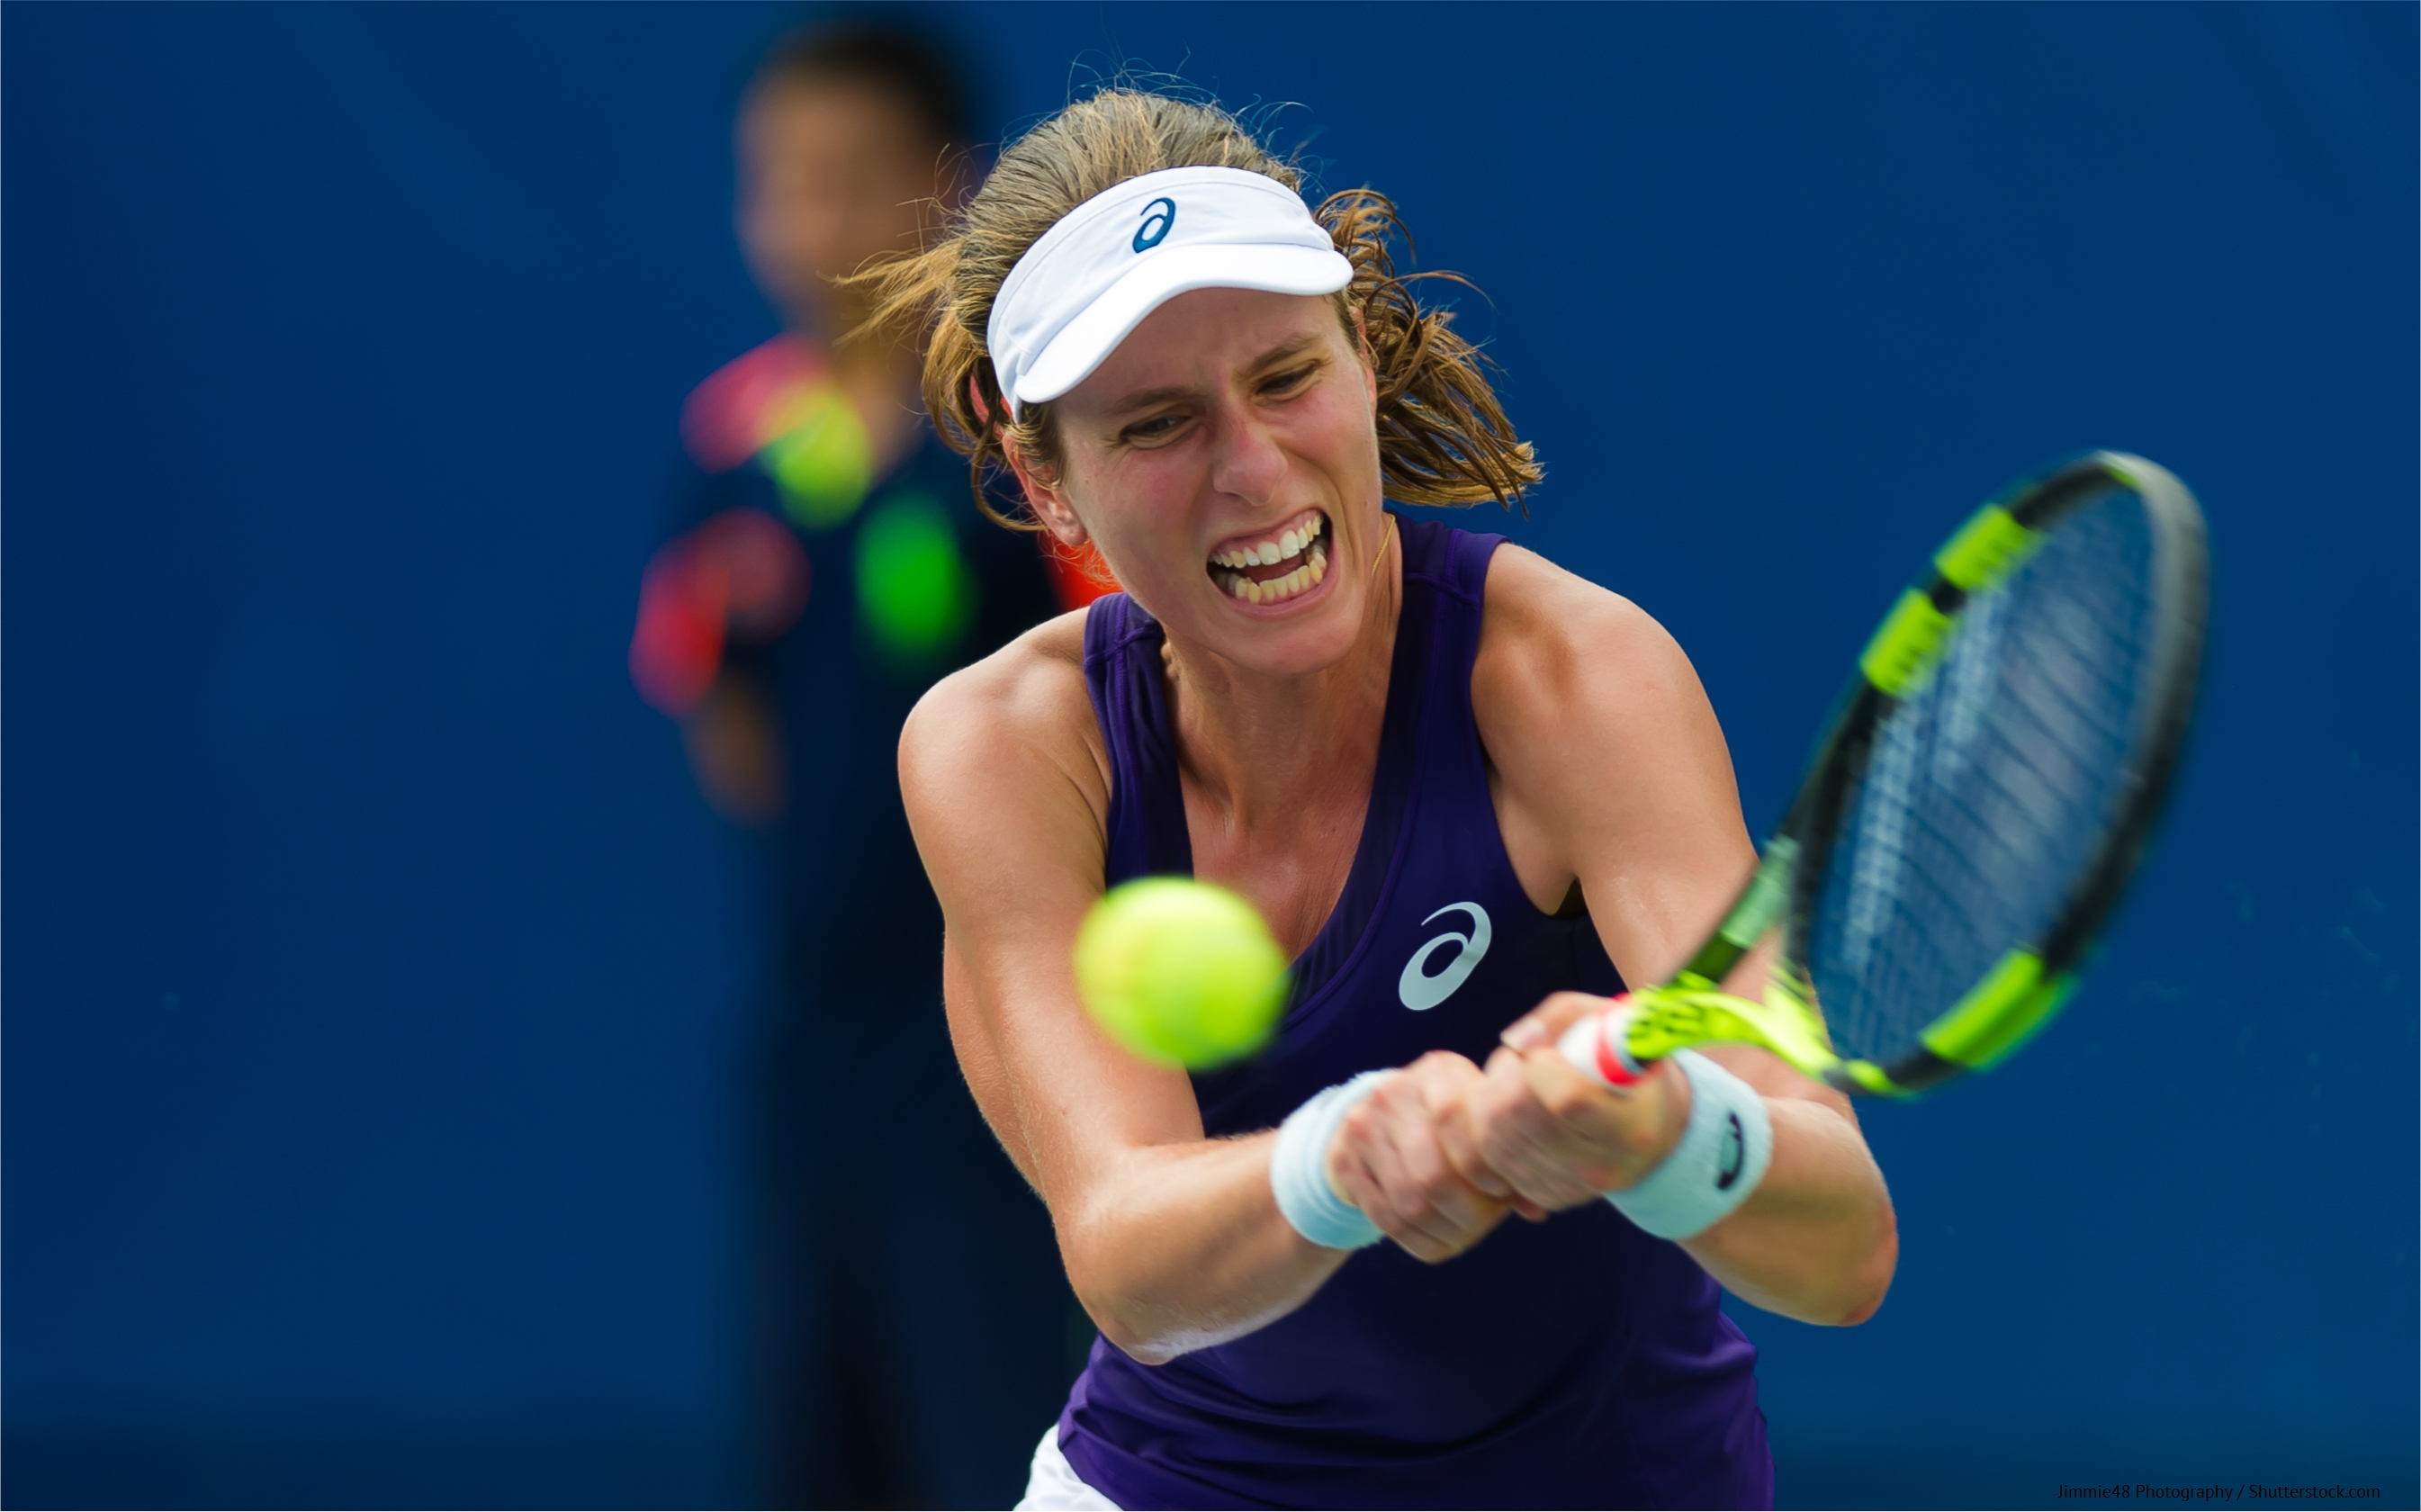 Johanna Konta trying to hit a tennis ball